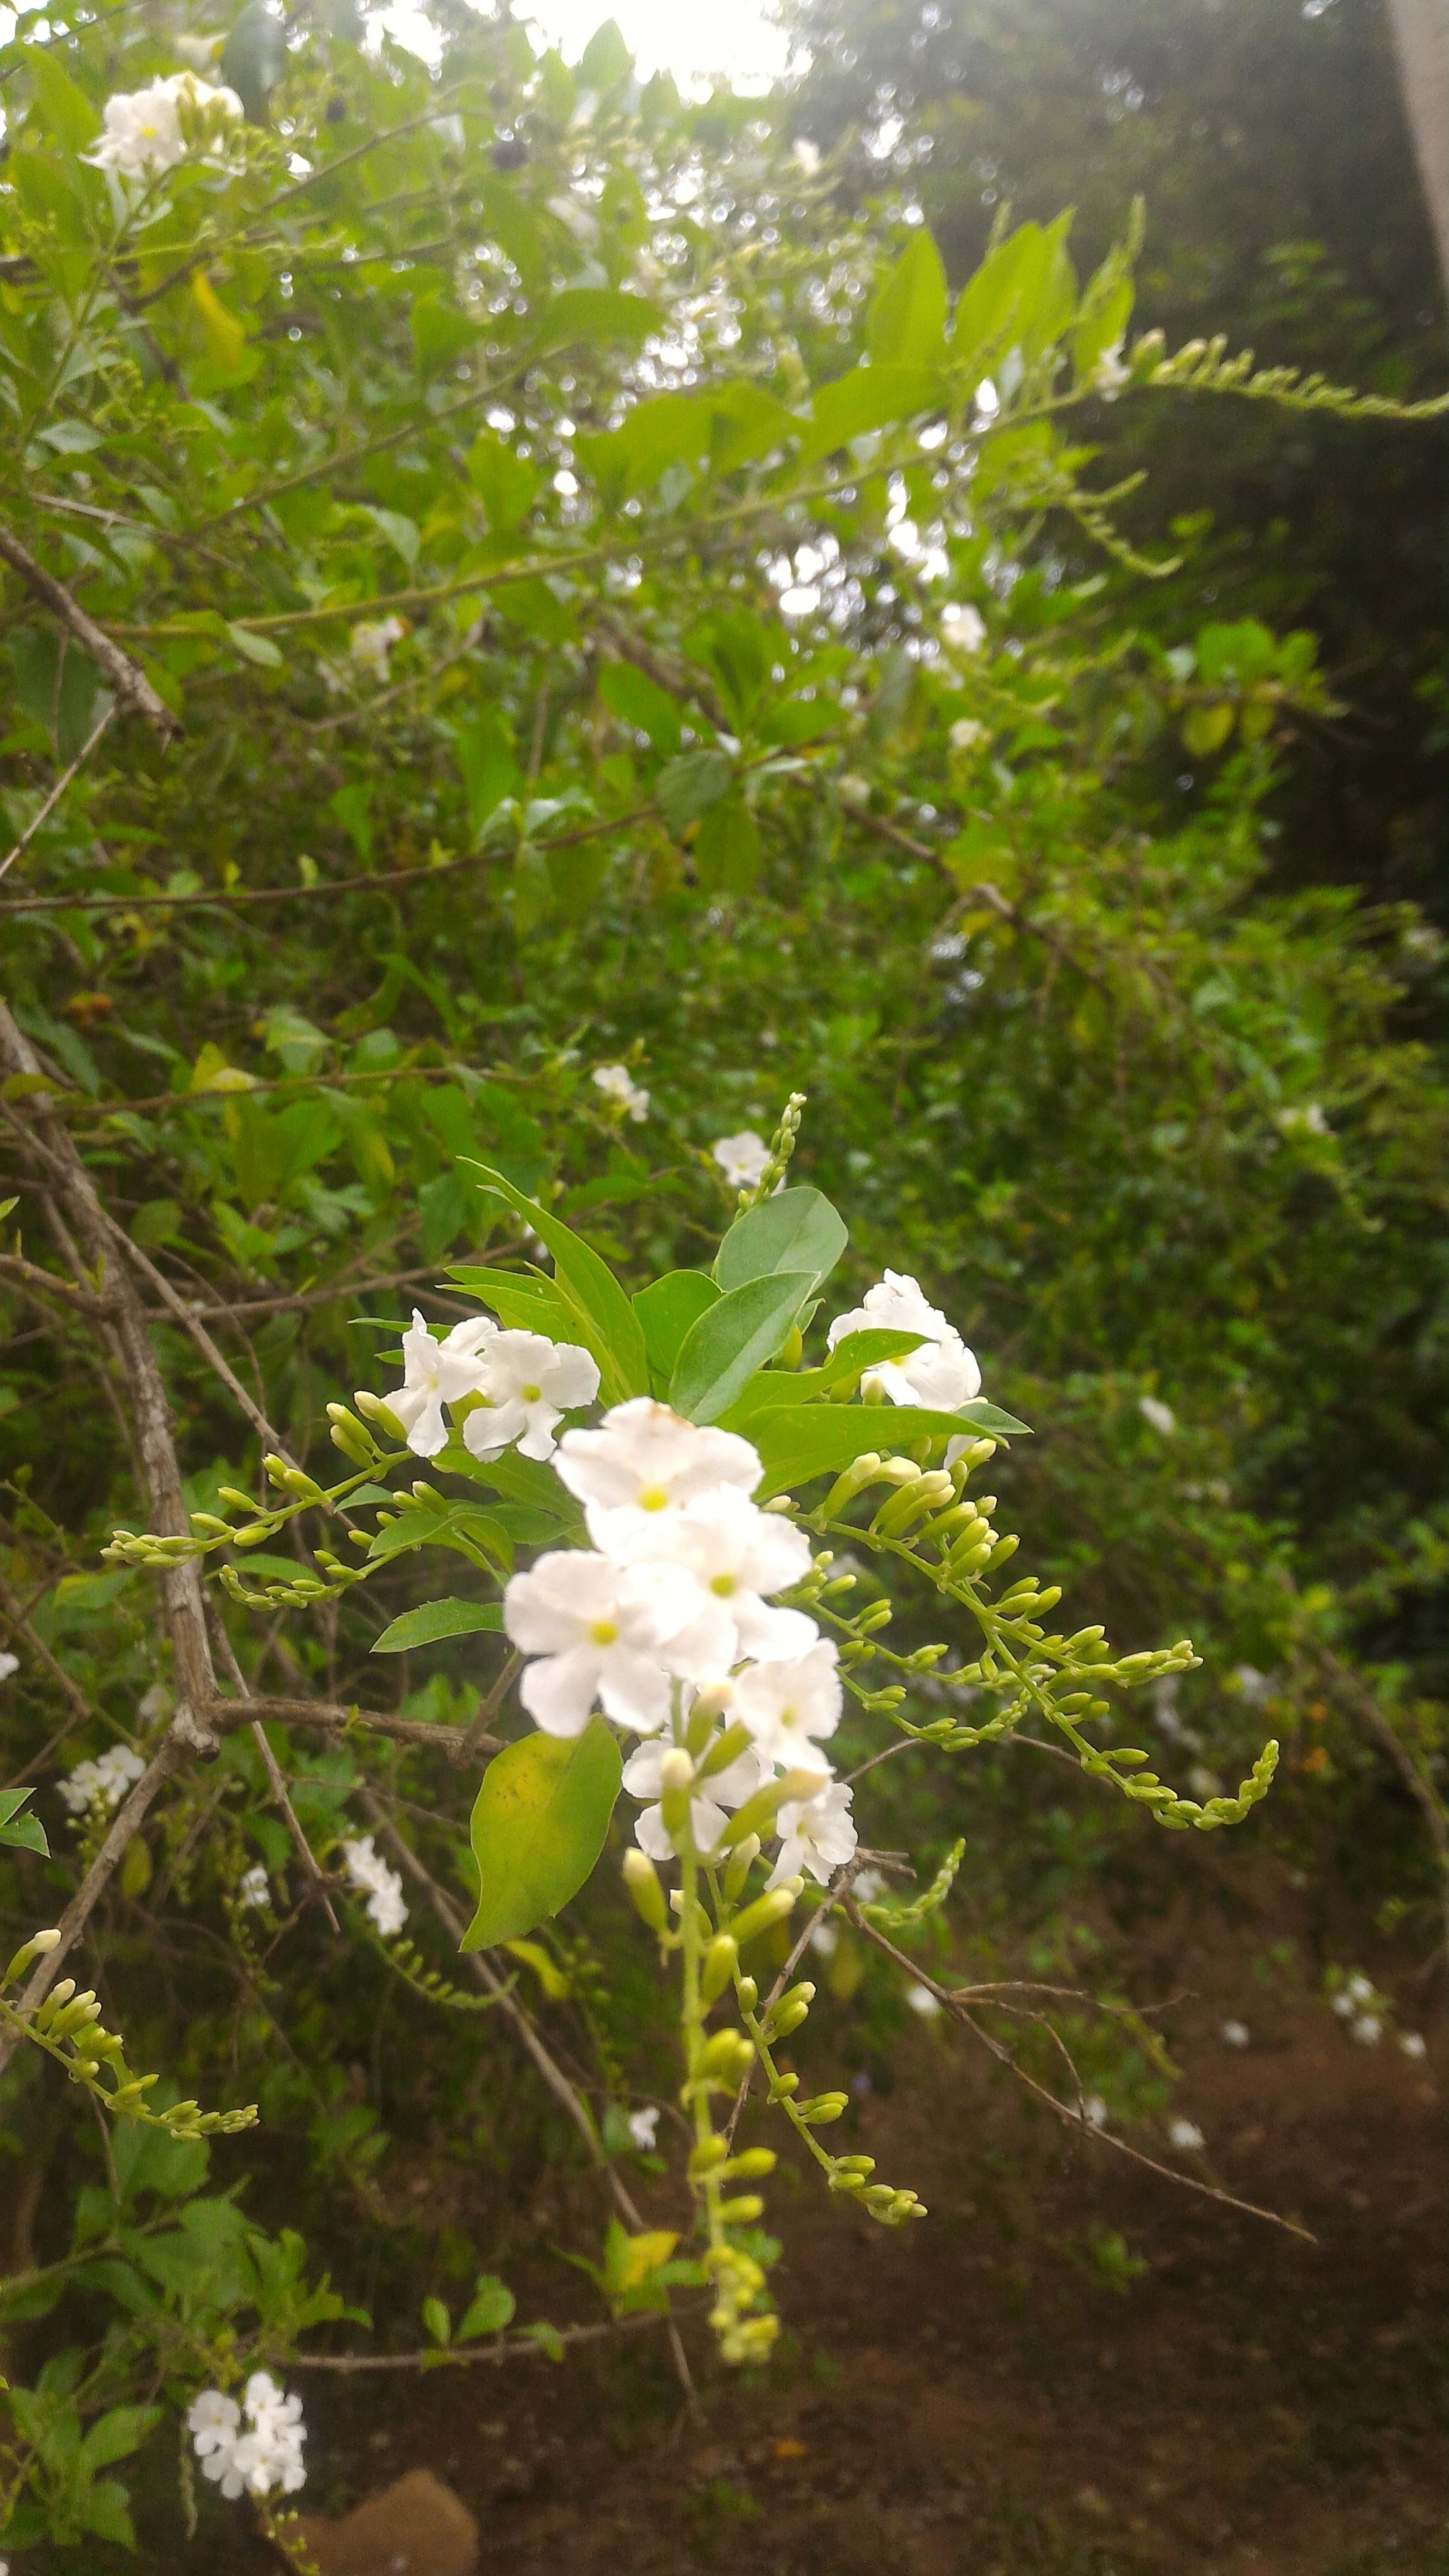 nature, white color, growth, freshness, beauty in nature, fragility, flower, green color, plant, no people, outdoors, petal, close-up, flower head, day, tree